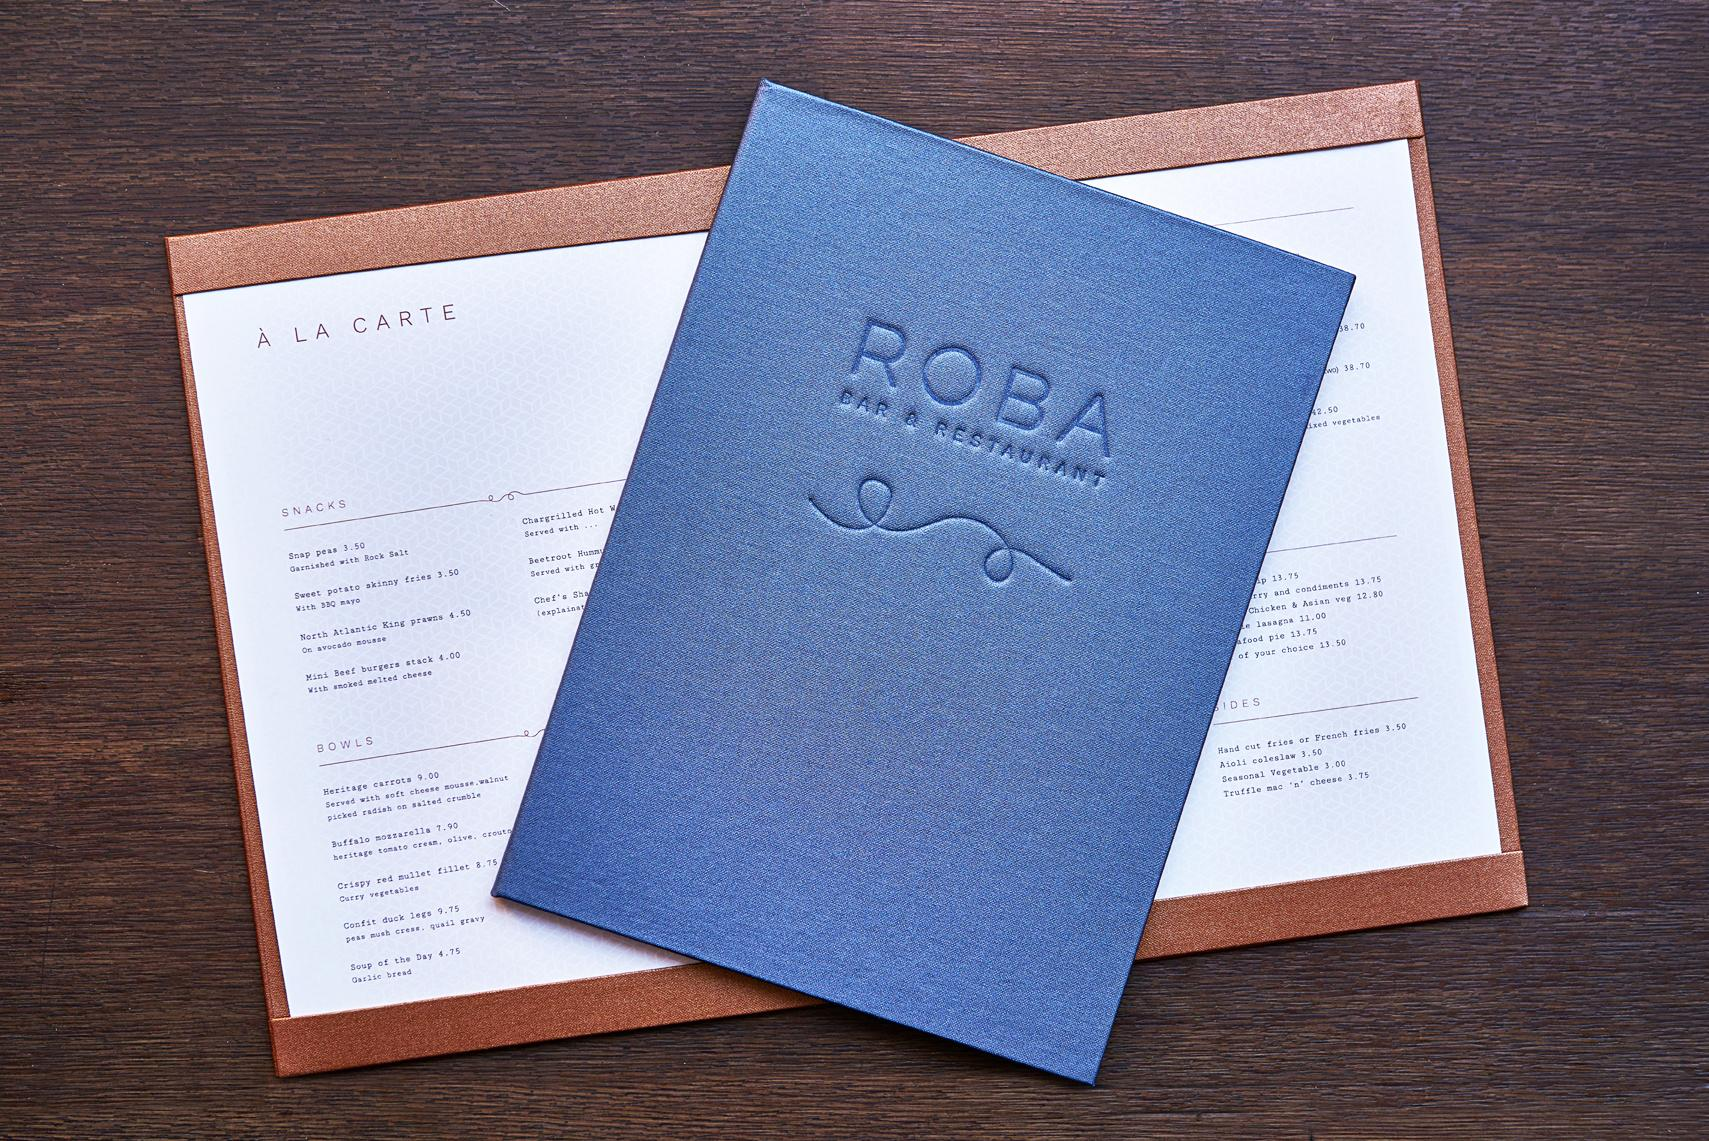 Roba Bar & Restaurant - London